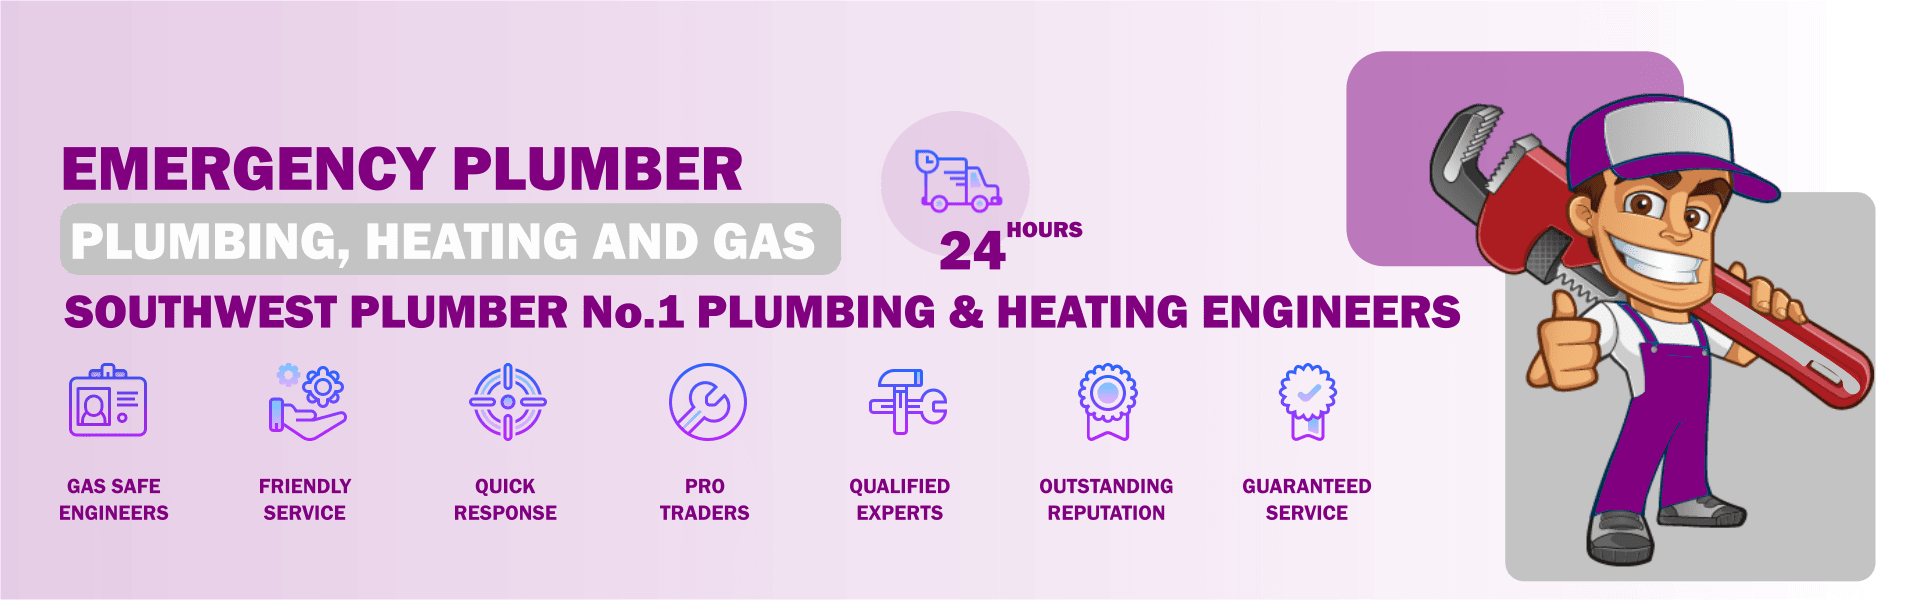 Emergency Plumber Nailsea